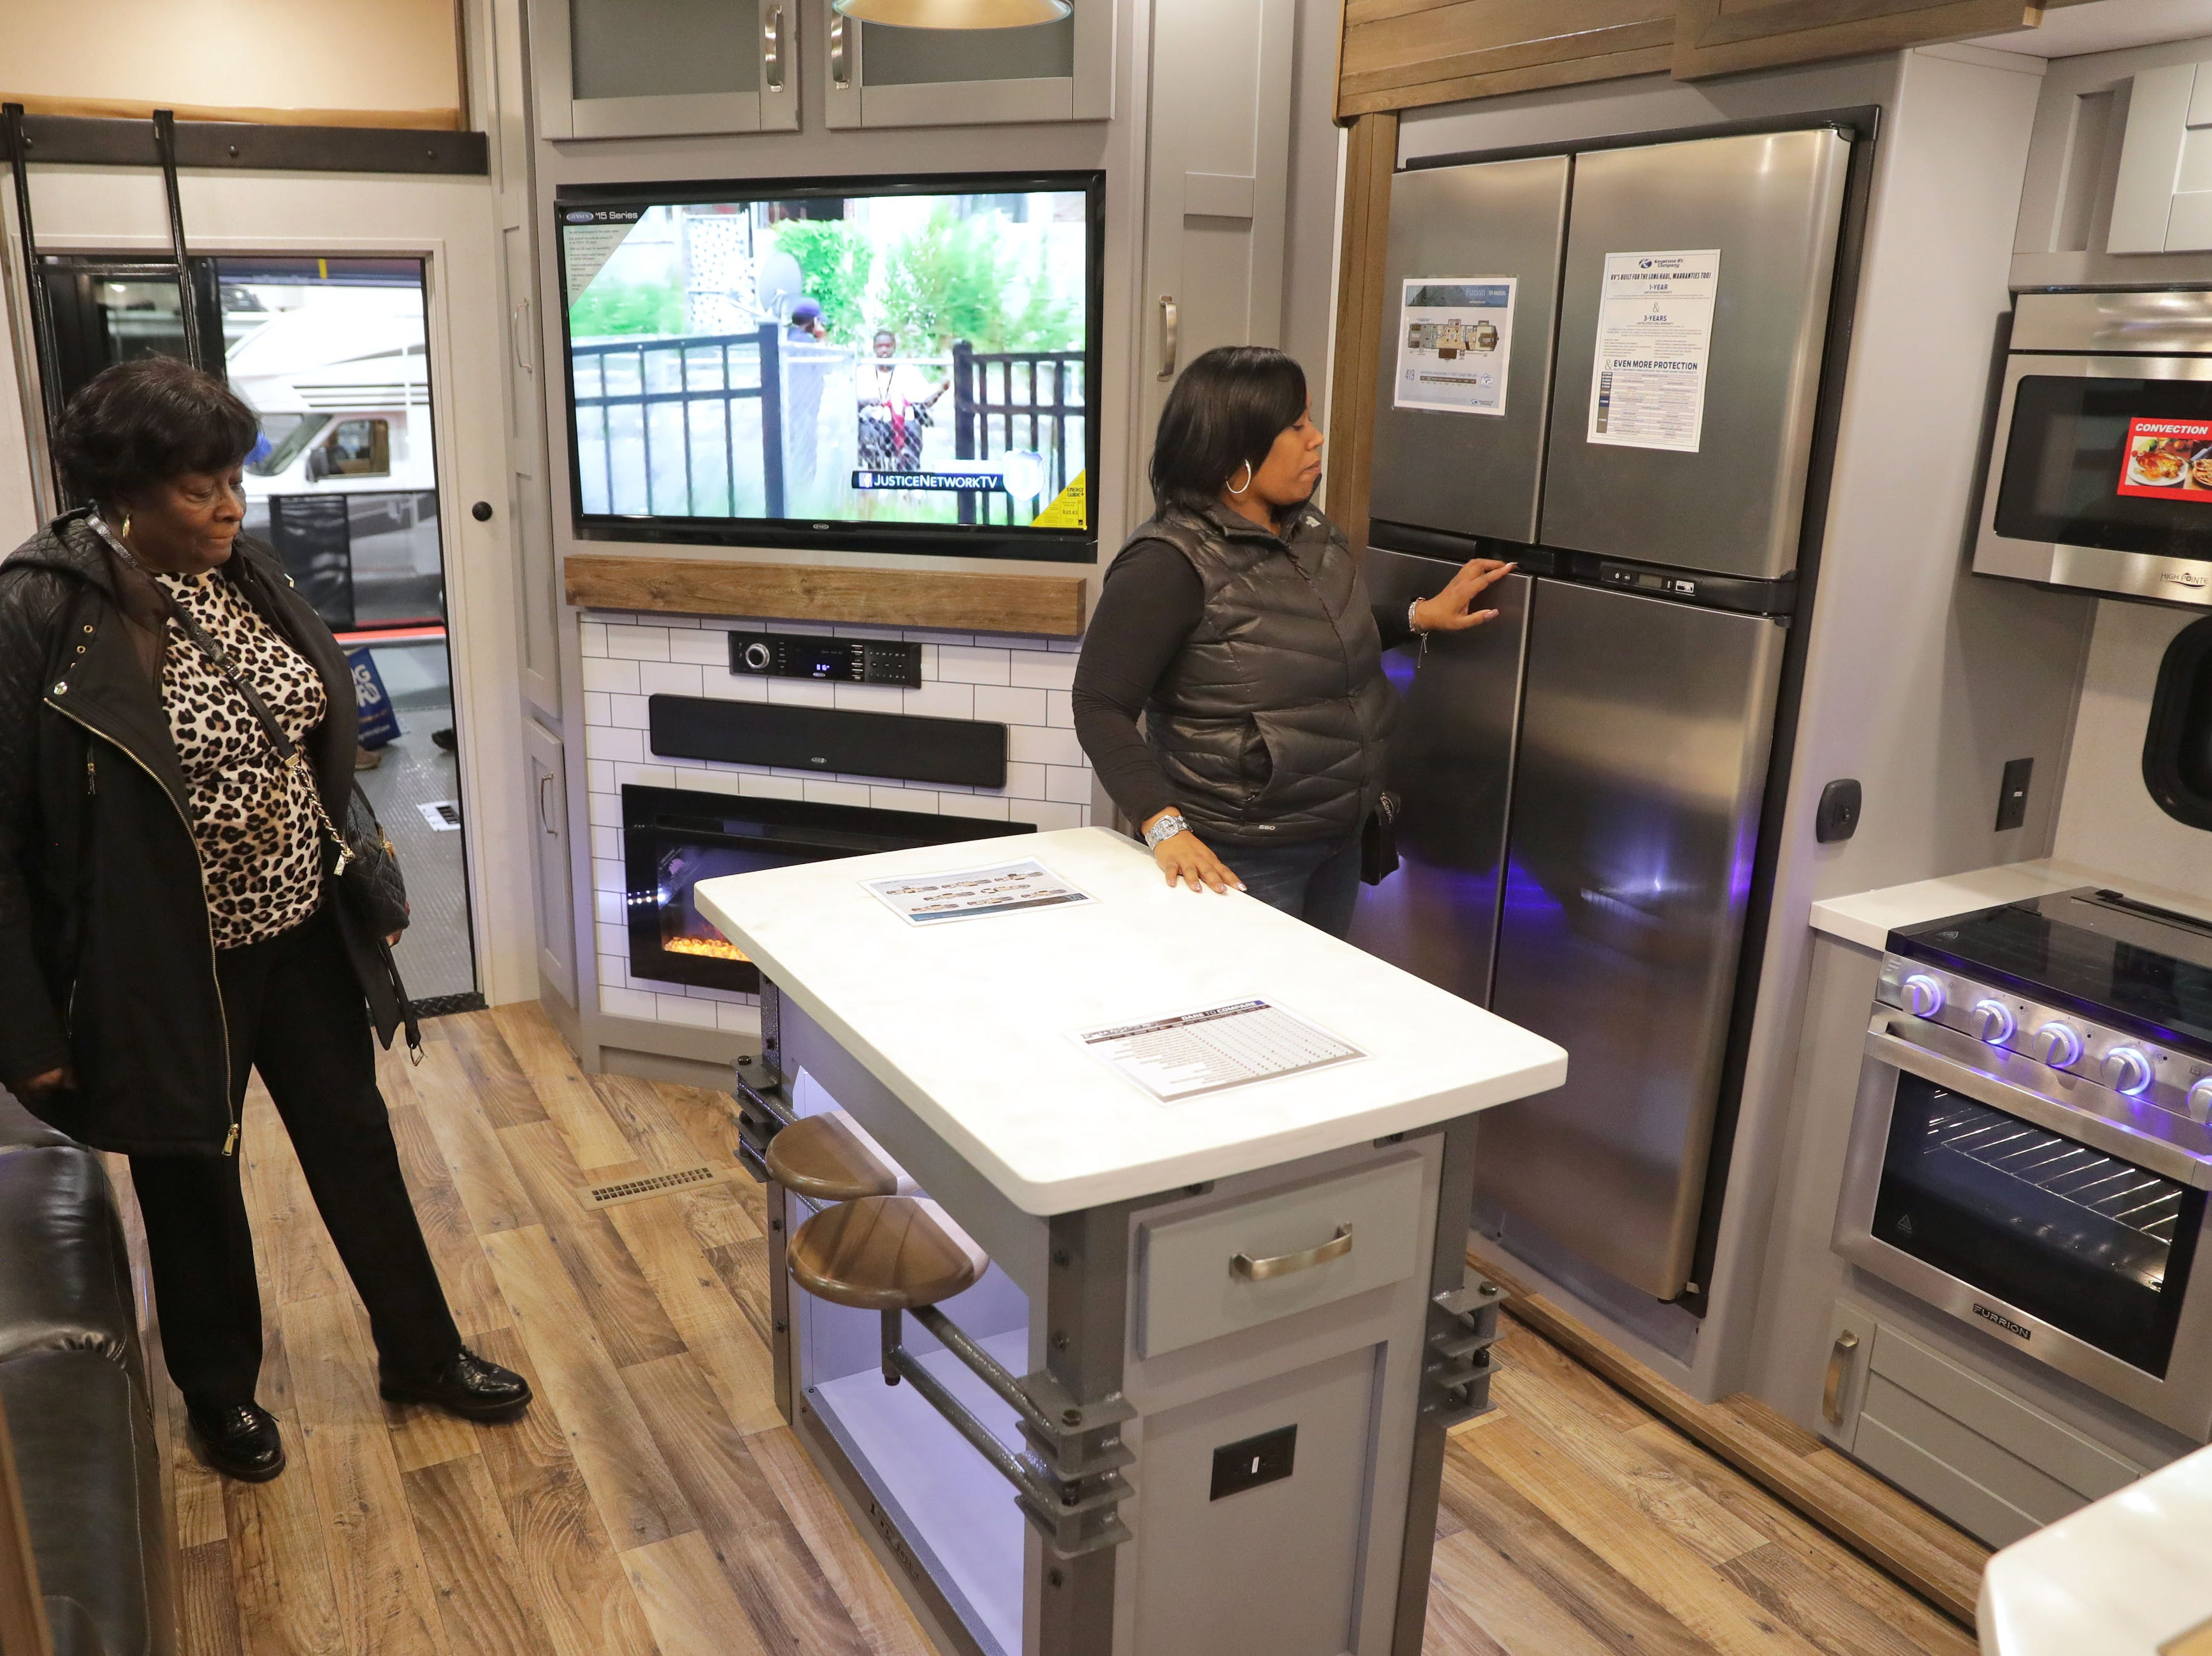 Johnnie Scott (left) of Glendale and her daughter, Kaelin Whitley, of Milwaukee check out the interior kitchen area of the 2019 keystone Fuzion, which lists for $69,999.